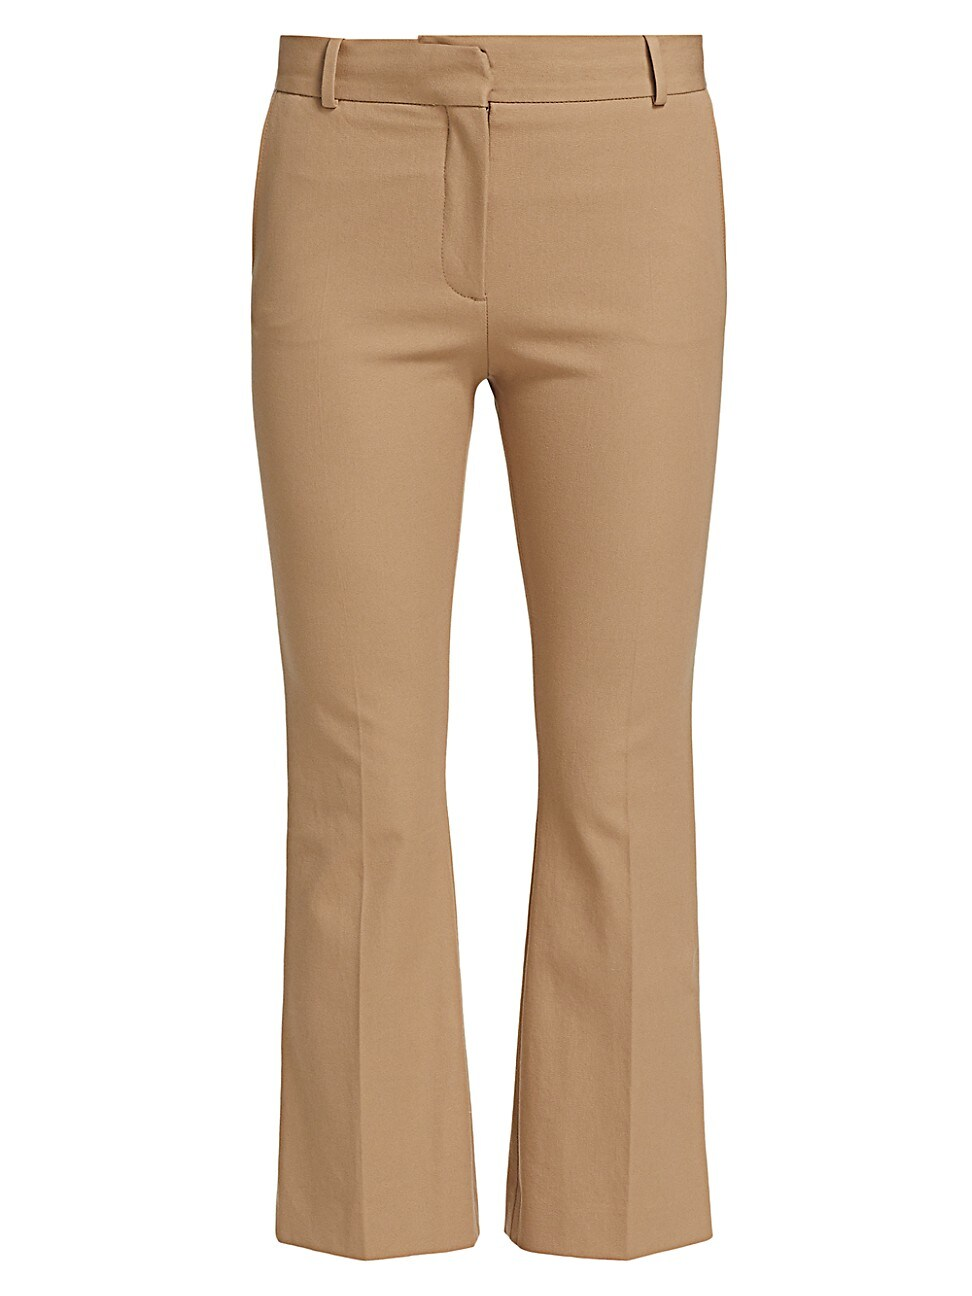 Frame WOMEN'S LE CROP MINI BOOTCUT TROUSERS